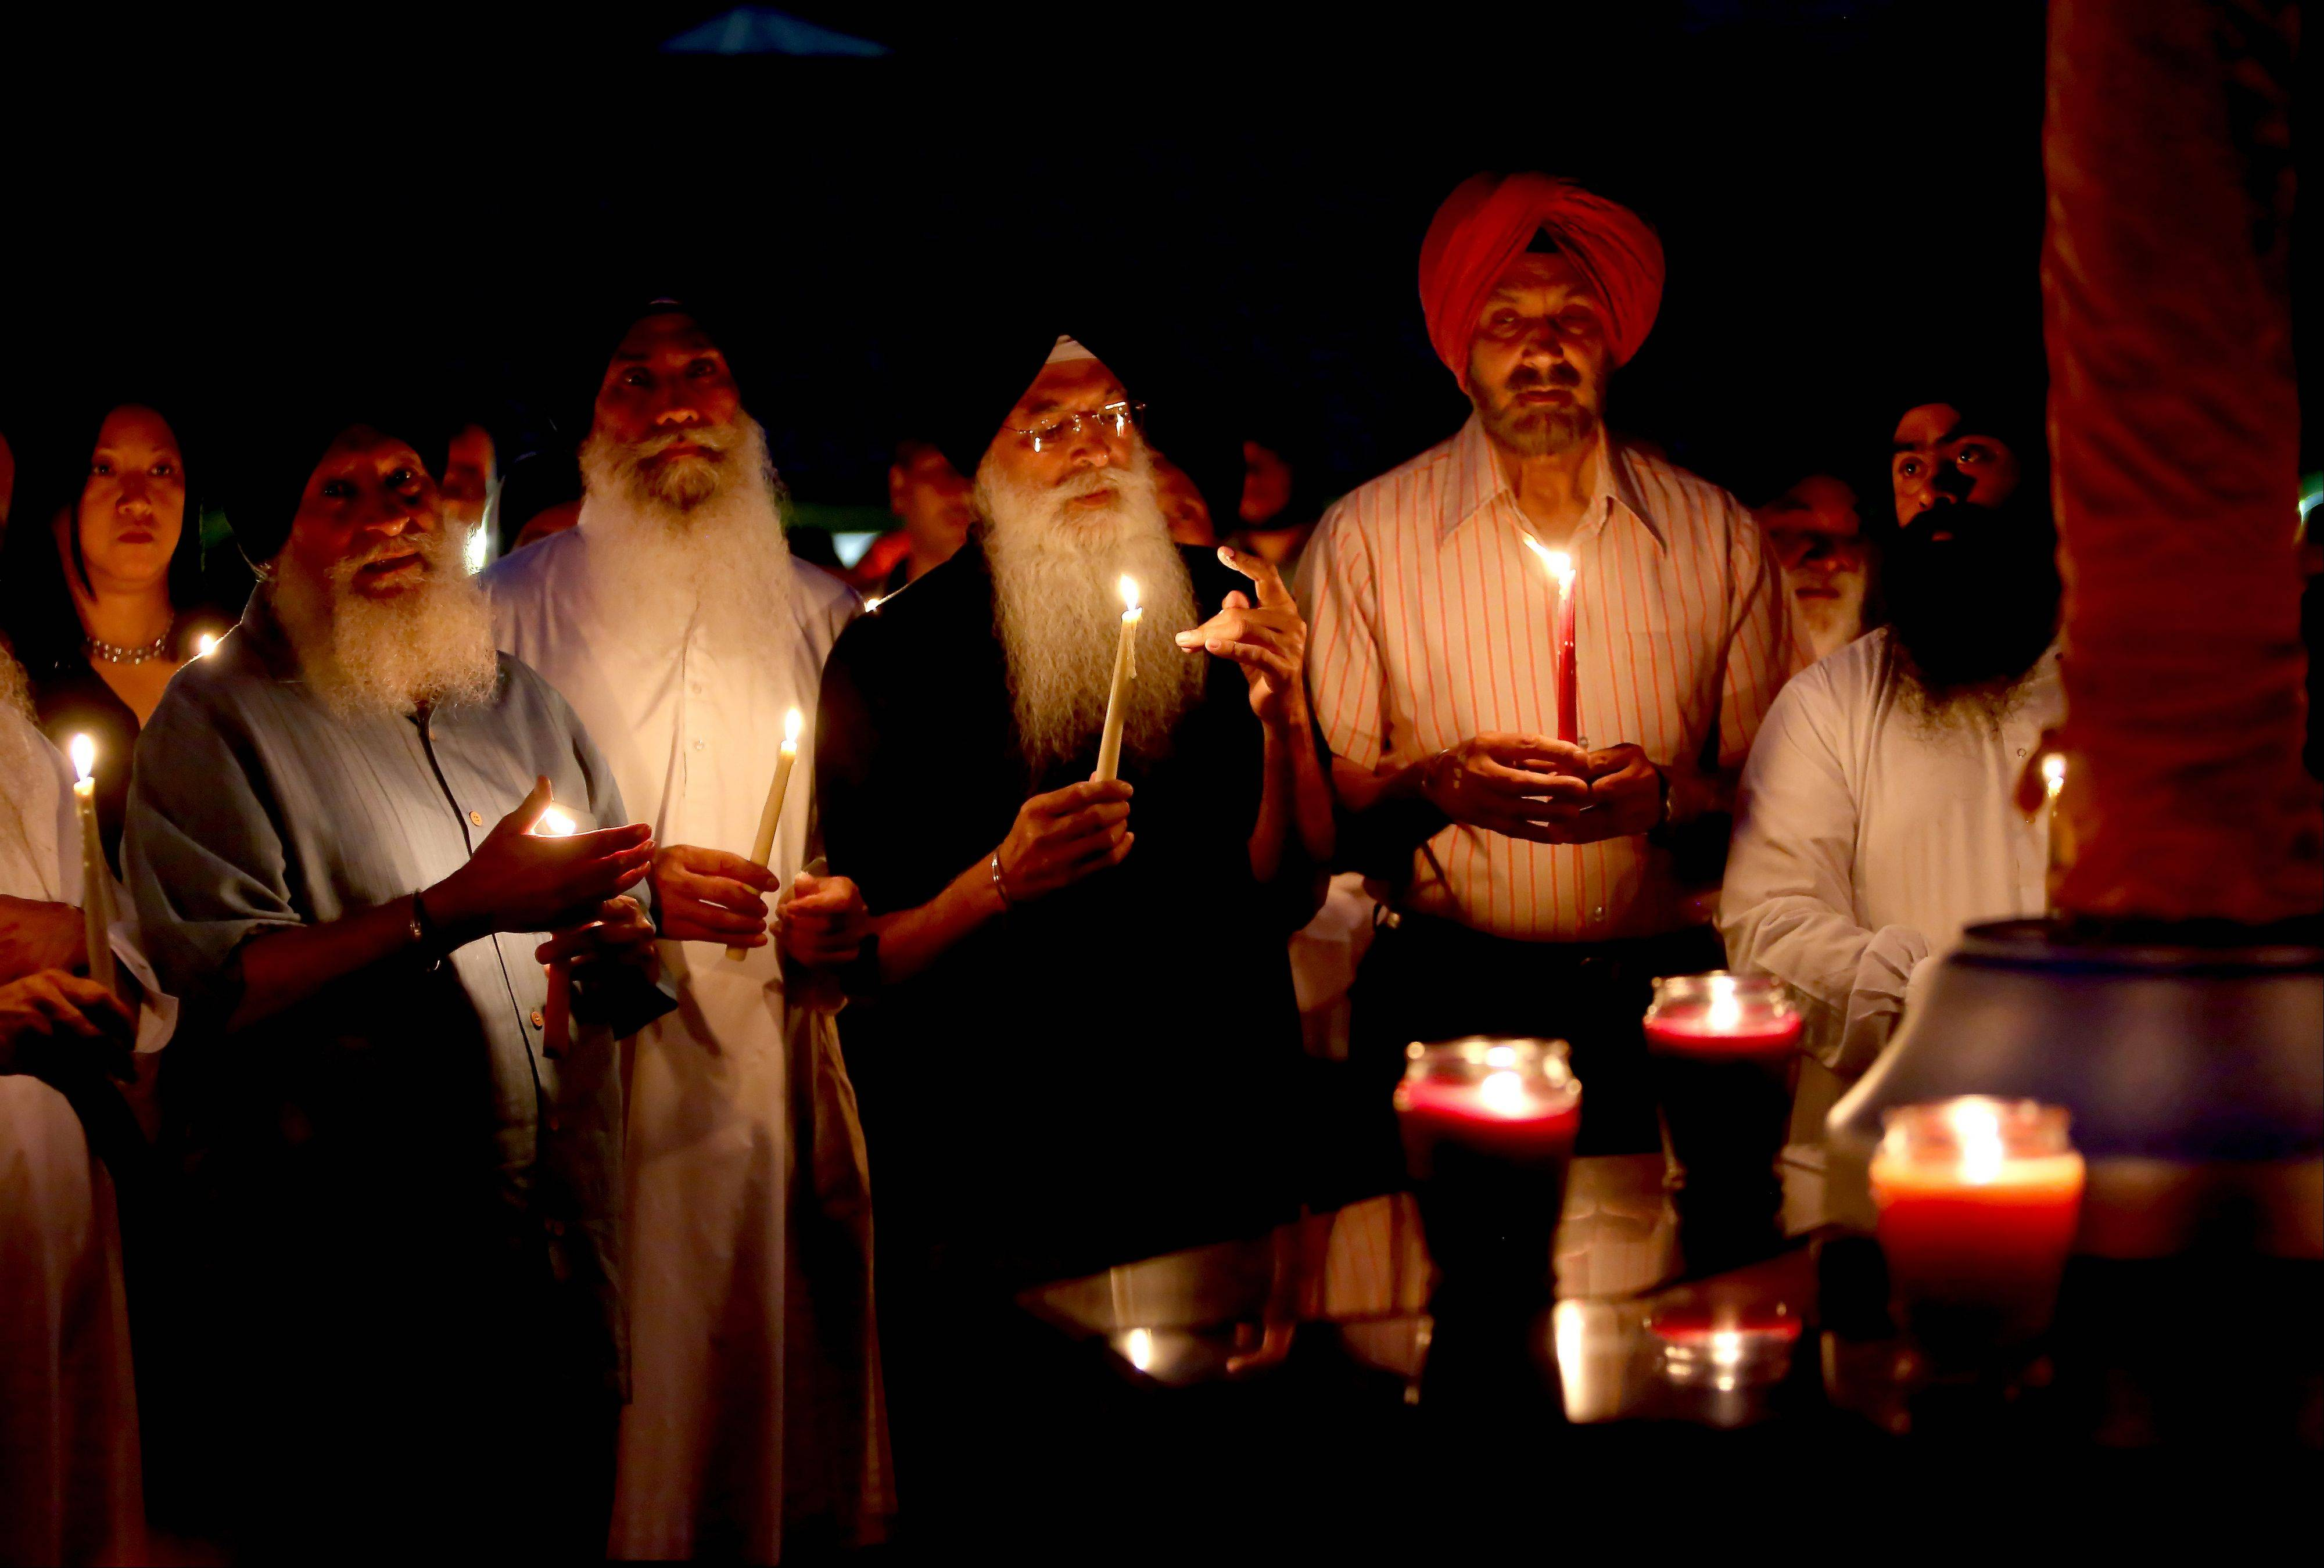 A candlelight vigil in Palatine on Monday night commemorated the victims of a shooting a year ago at a Sikh temple near Milwaukee.